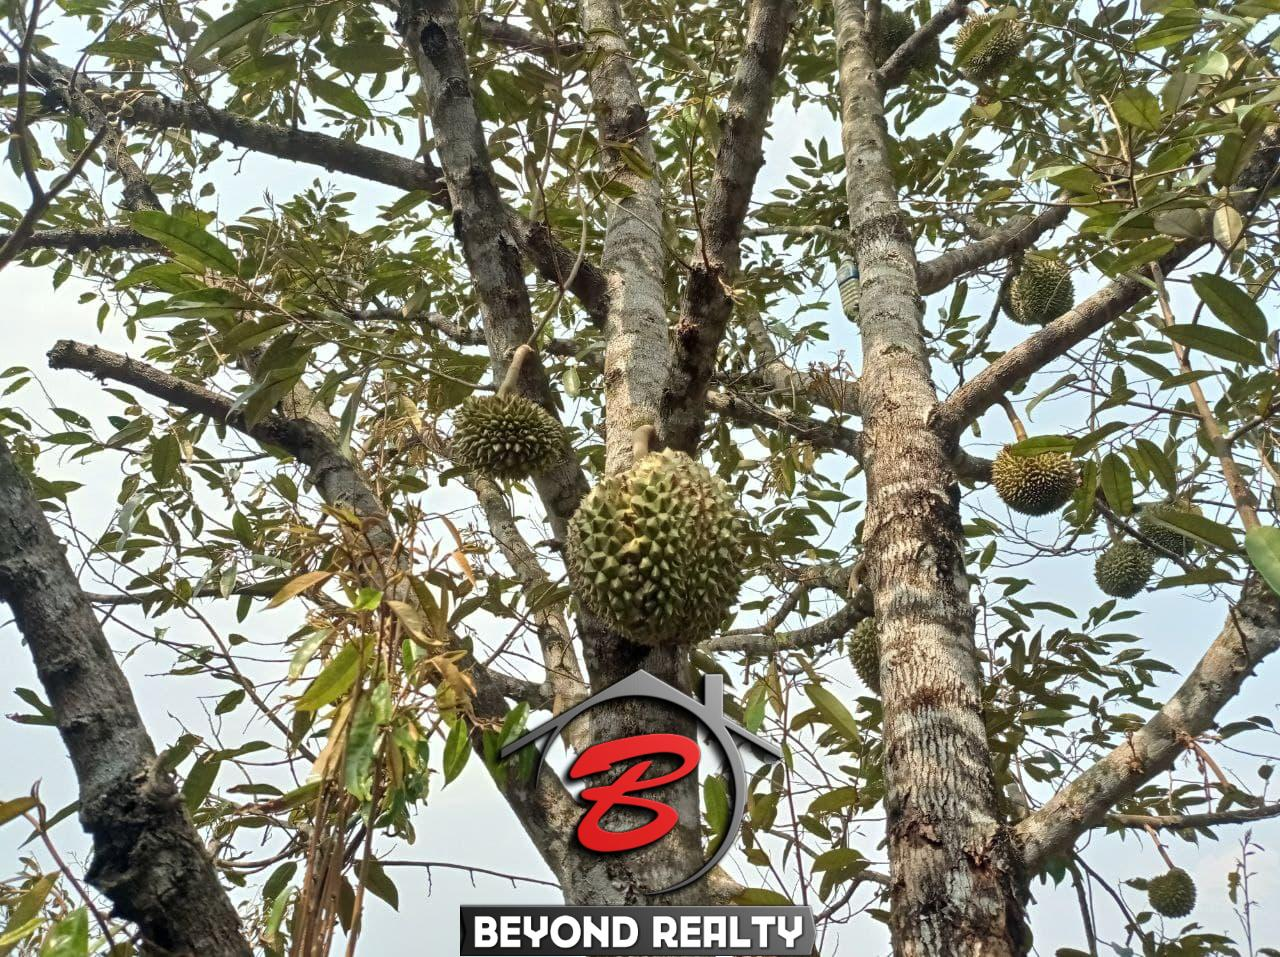 a jackfruit tree at the land for sale in Srae Ambel